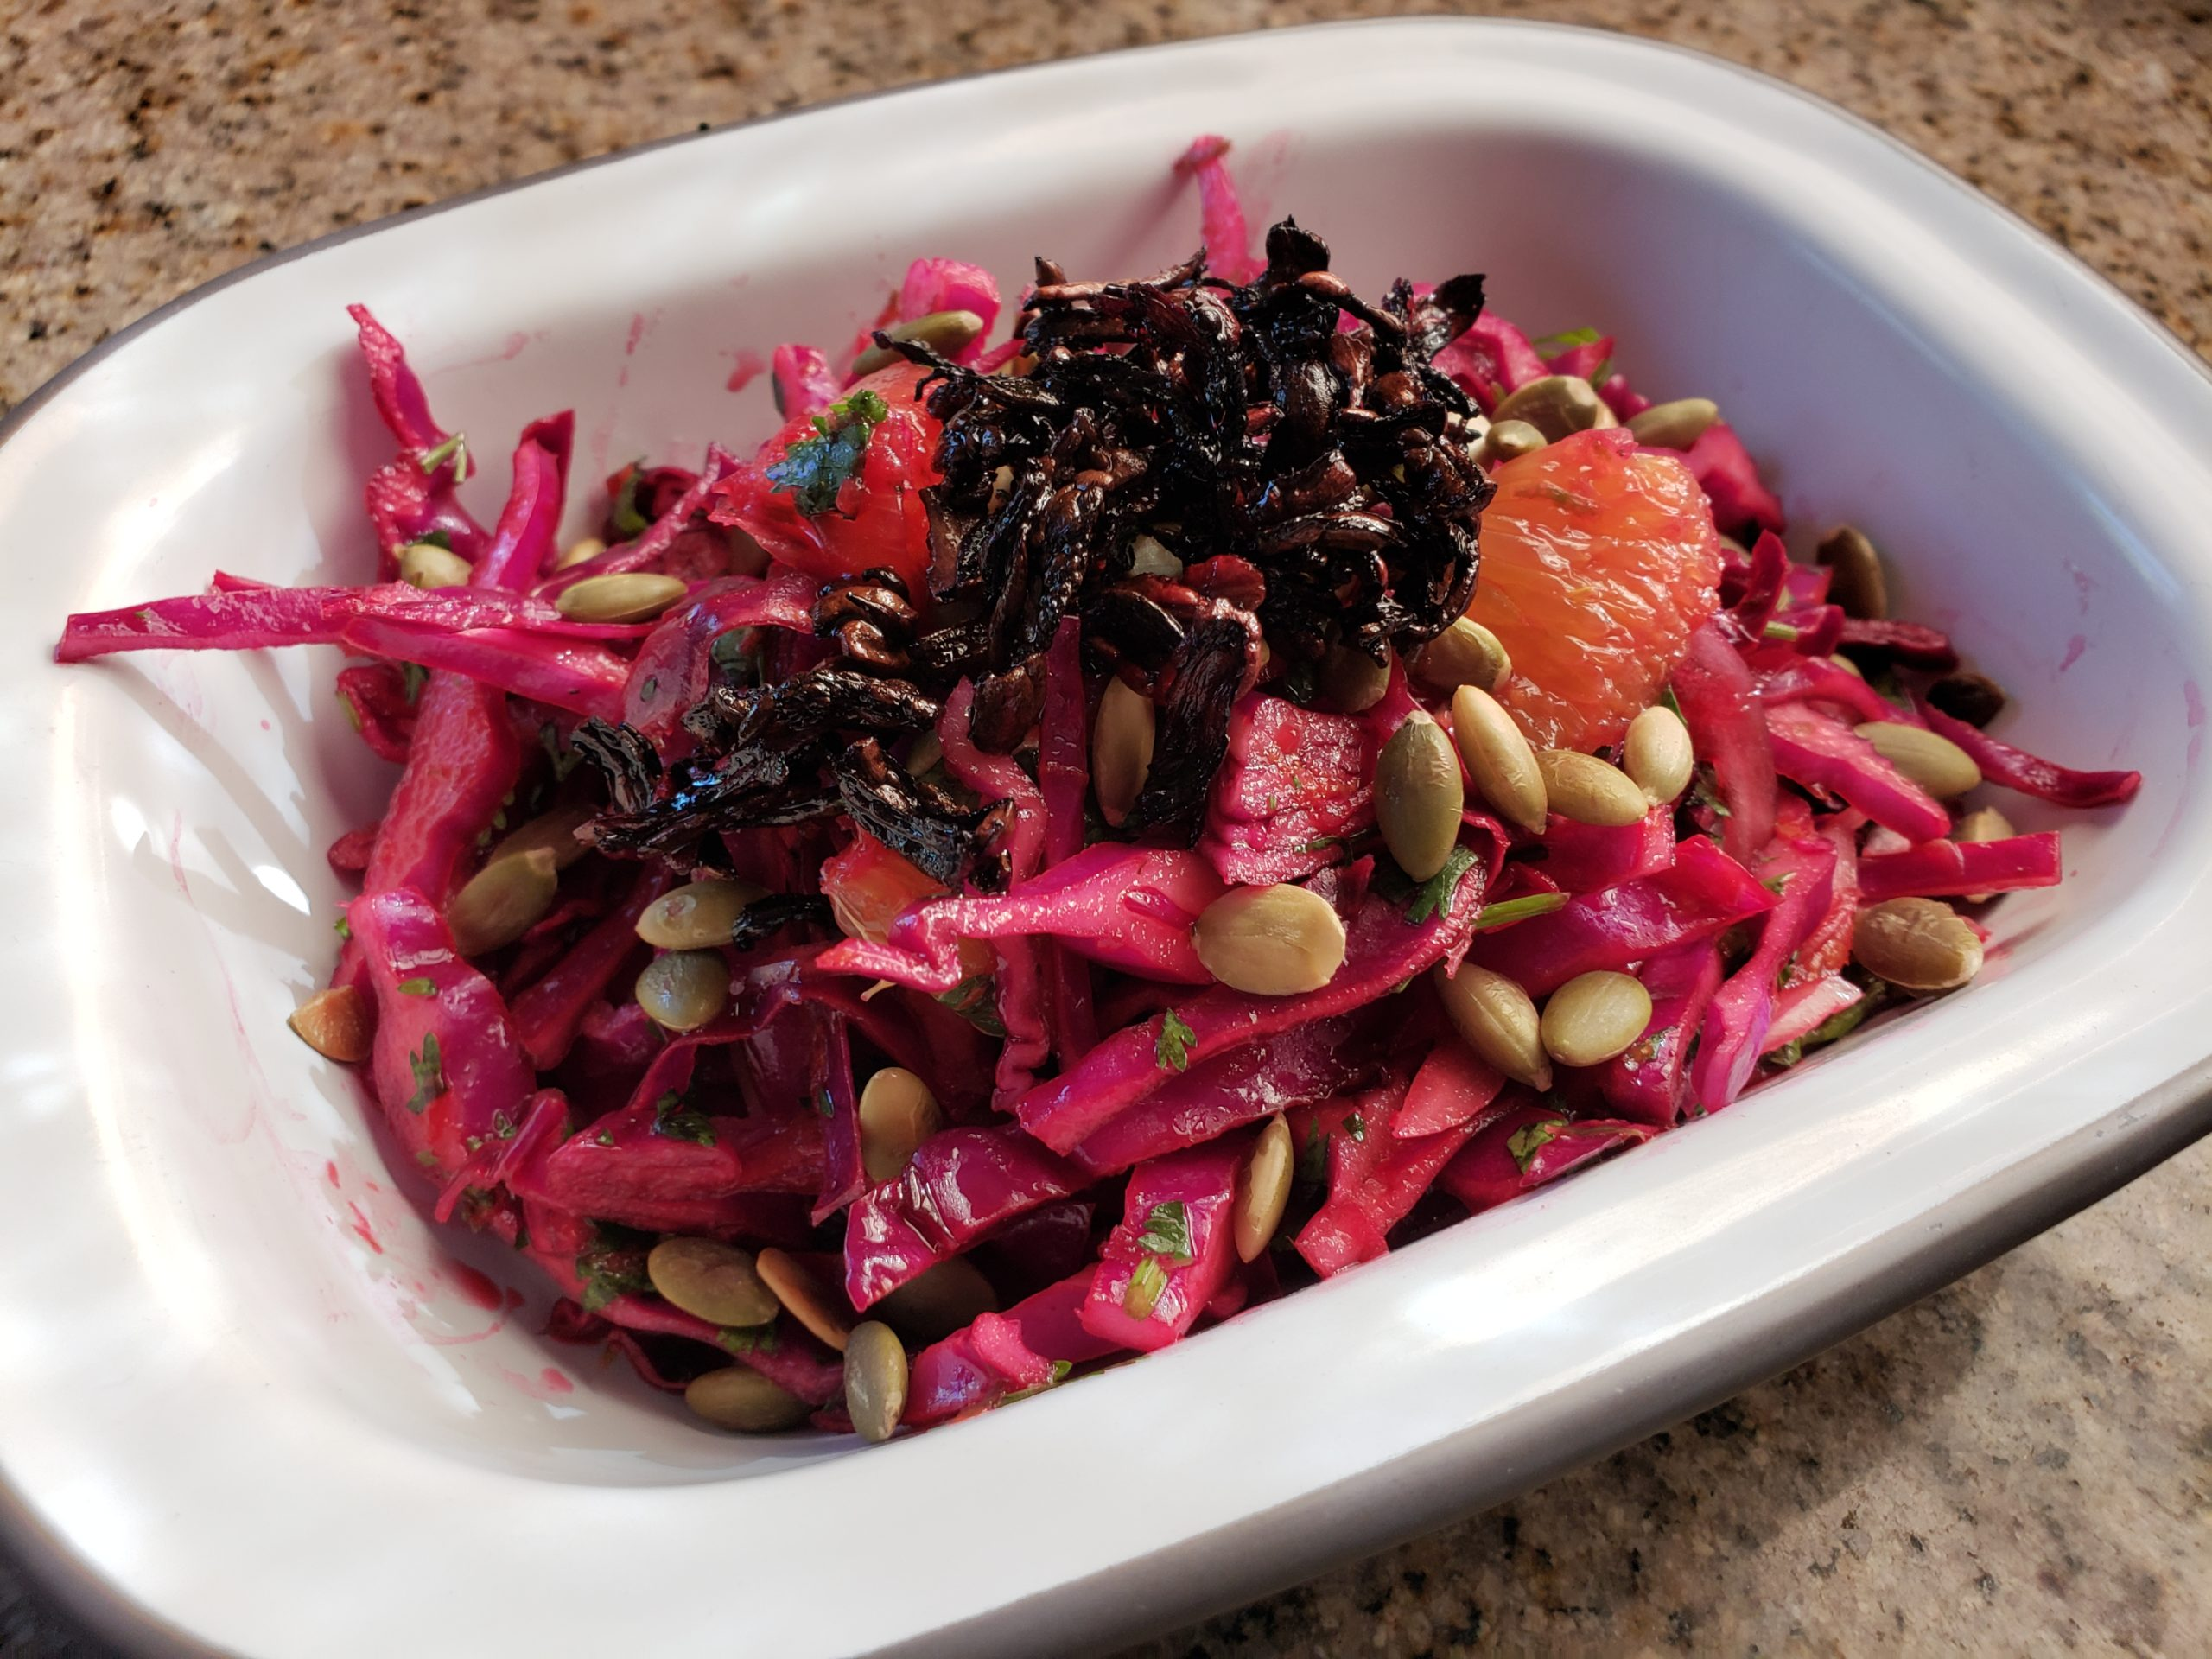 Red Cabbage Salad with Hibiscus, Chili, and Orange